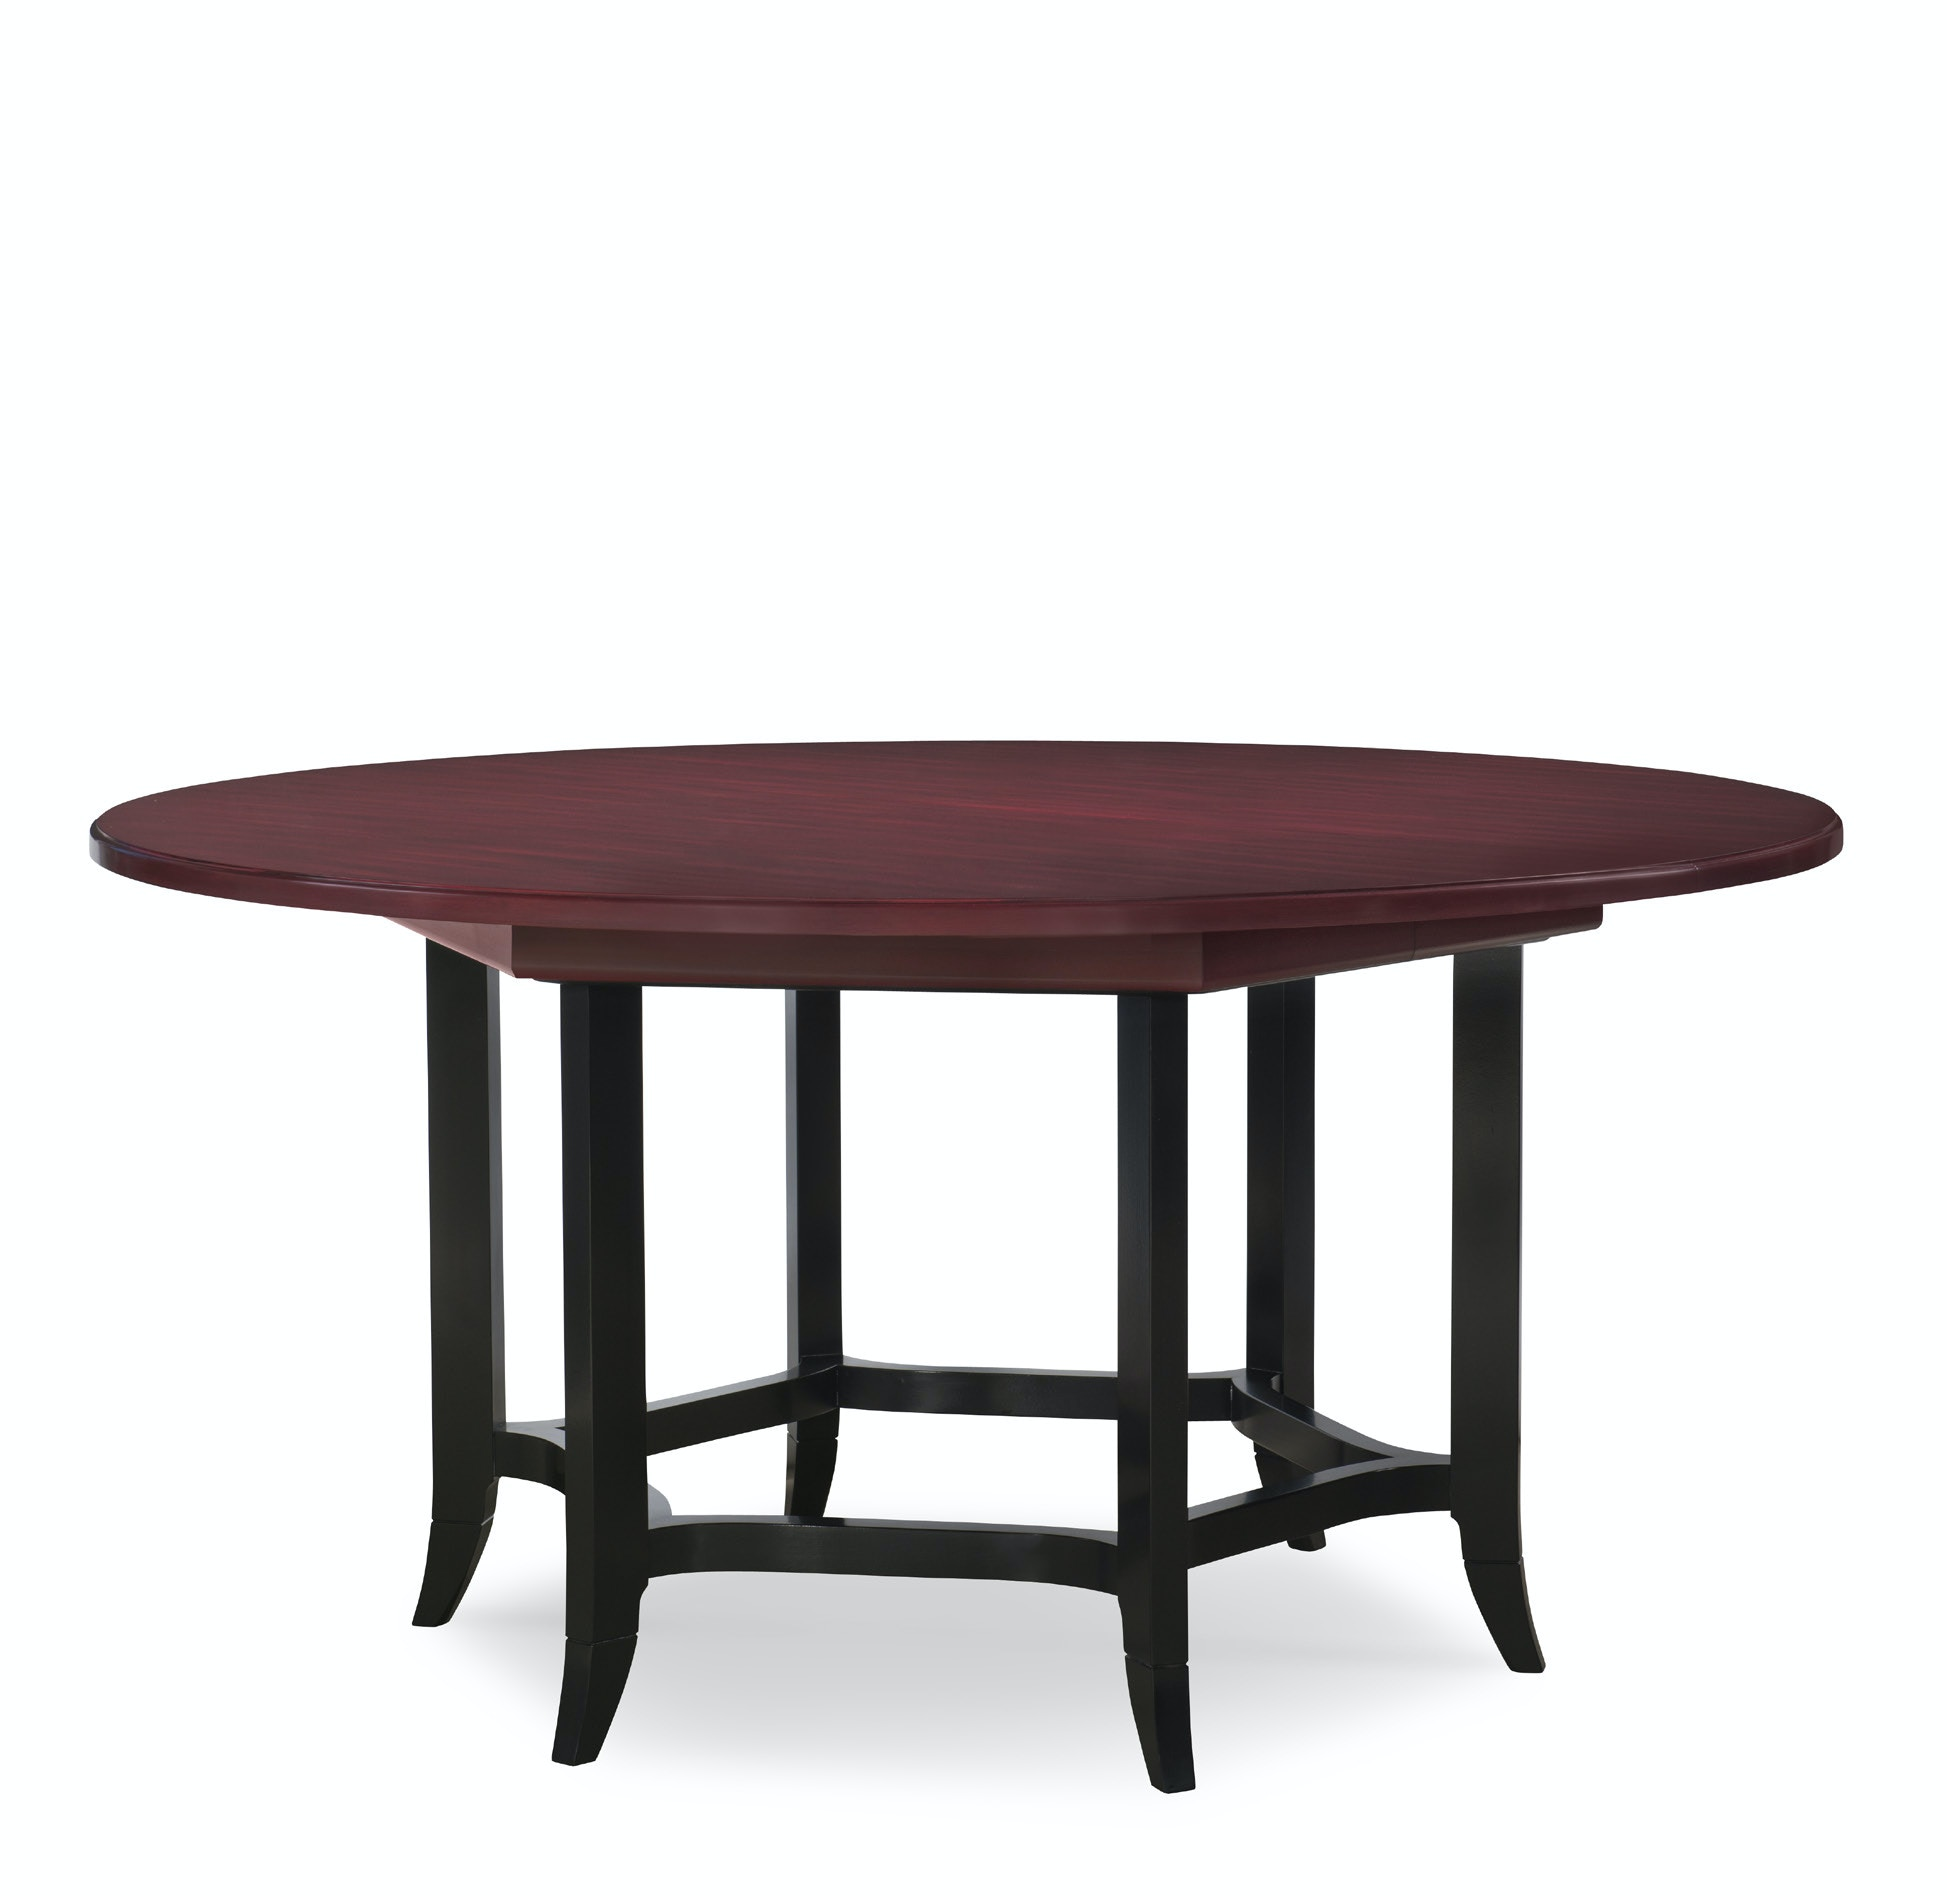 Henkel Harris Furniture Round Dining Table With 1 24in Apron Filler 440V